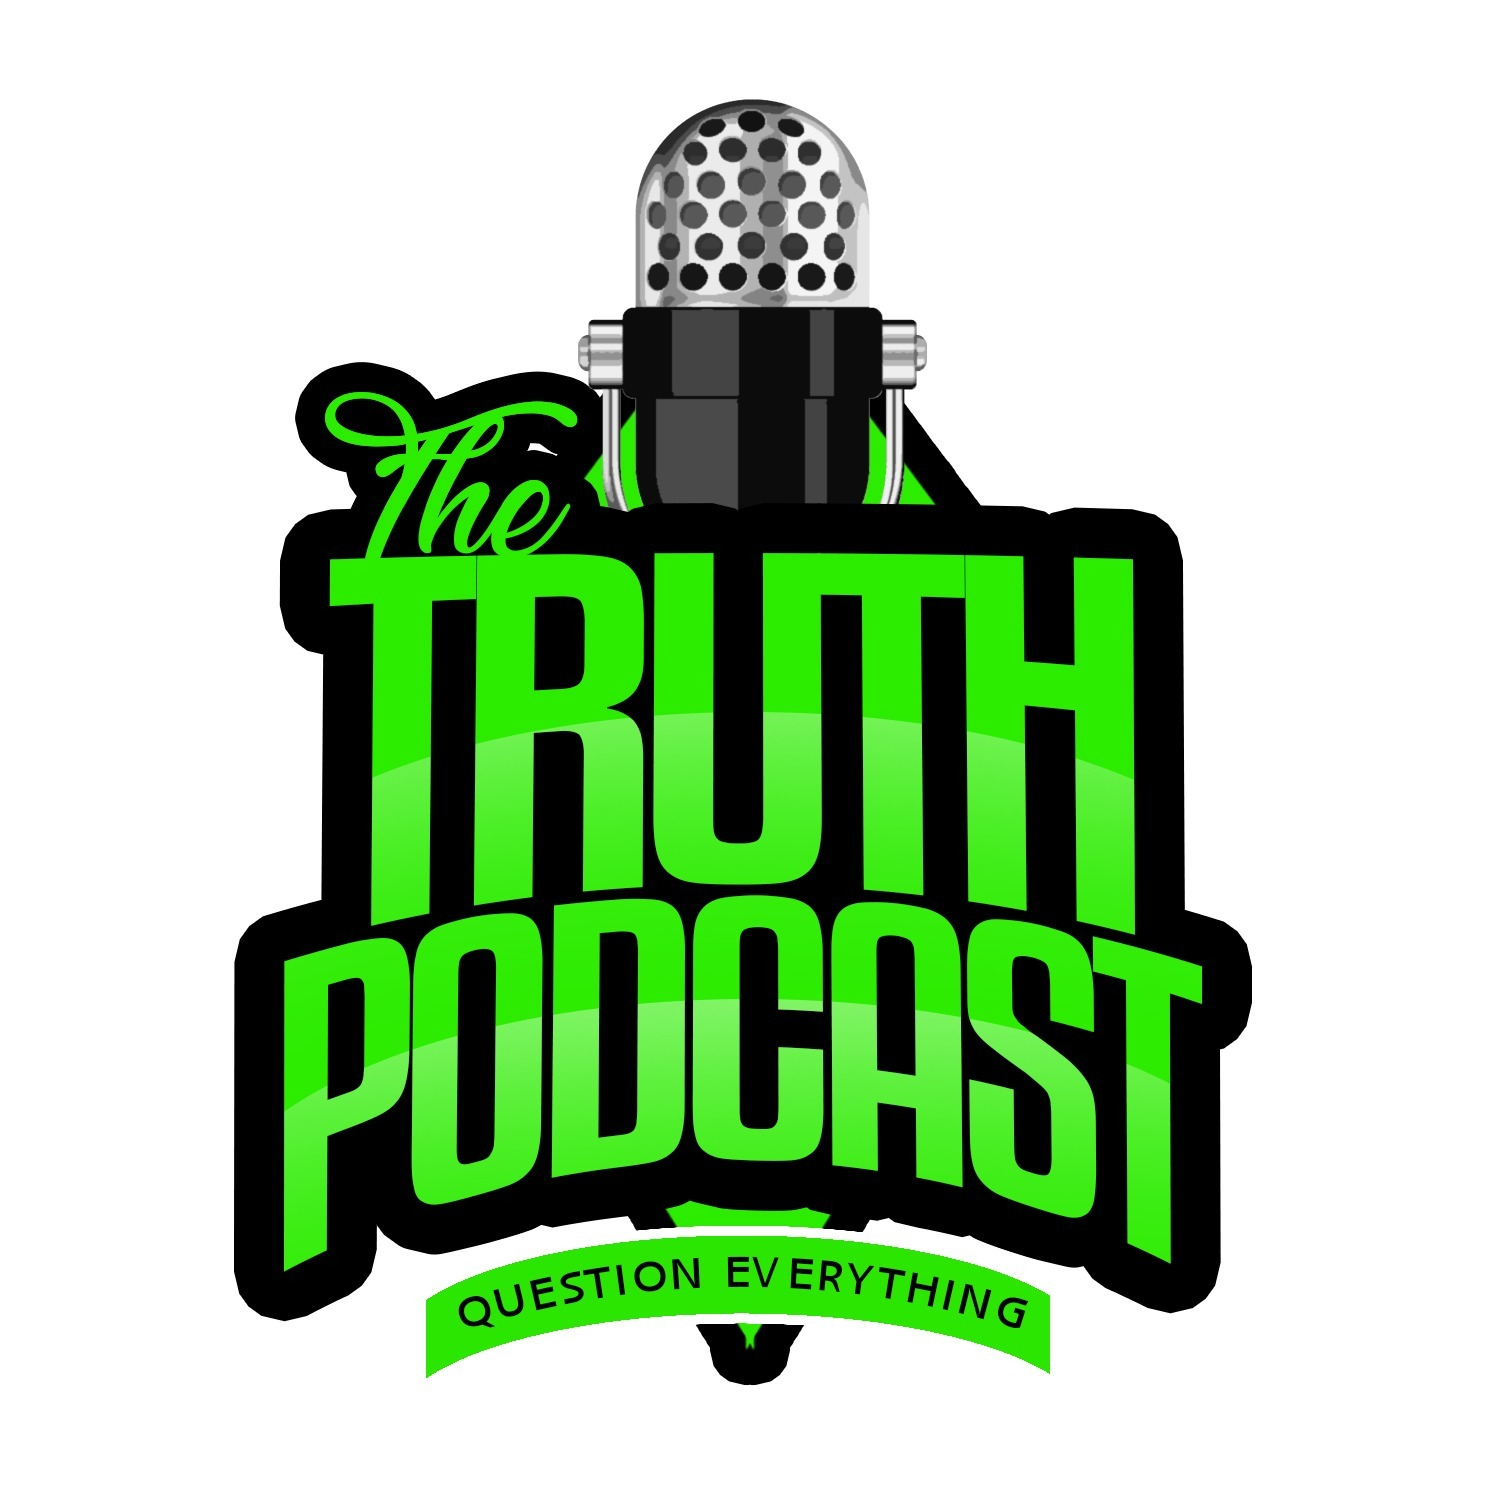 The Truth Podcast: Question Everything!